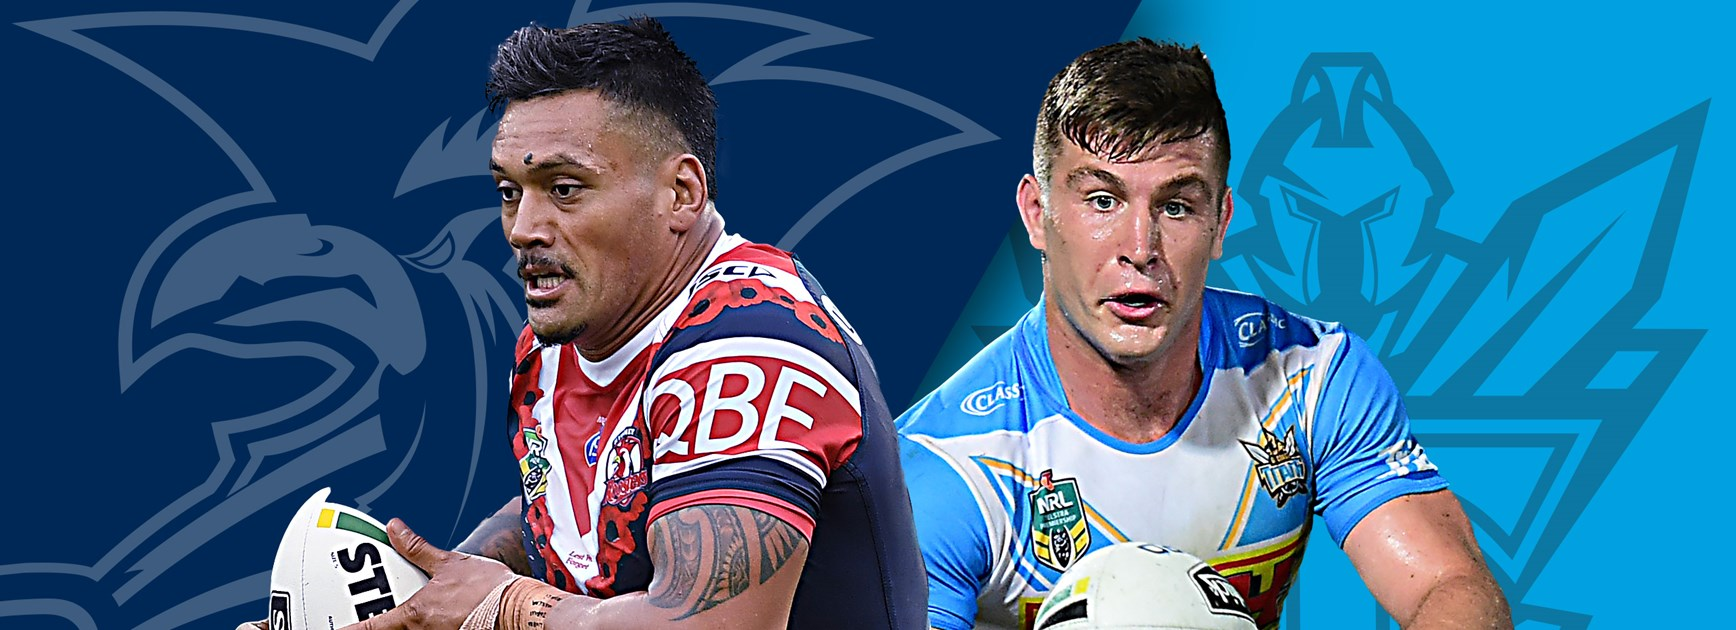 Roosters v Titans: Late changes for both sides